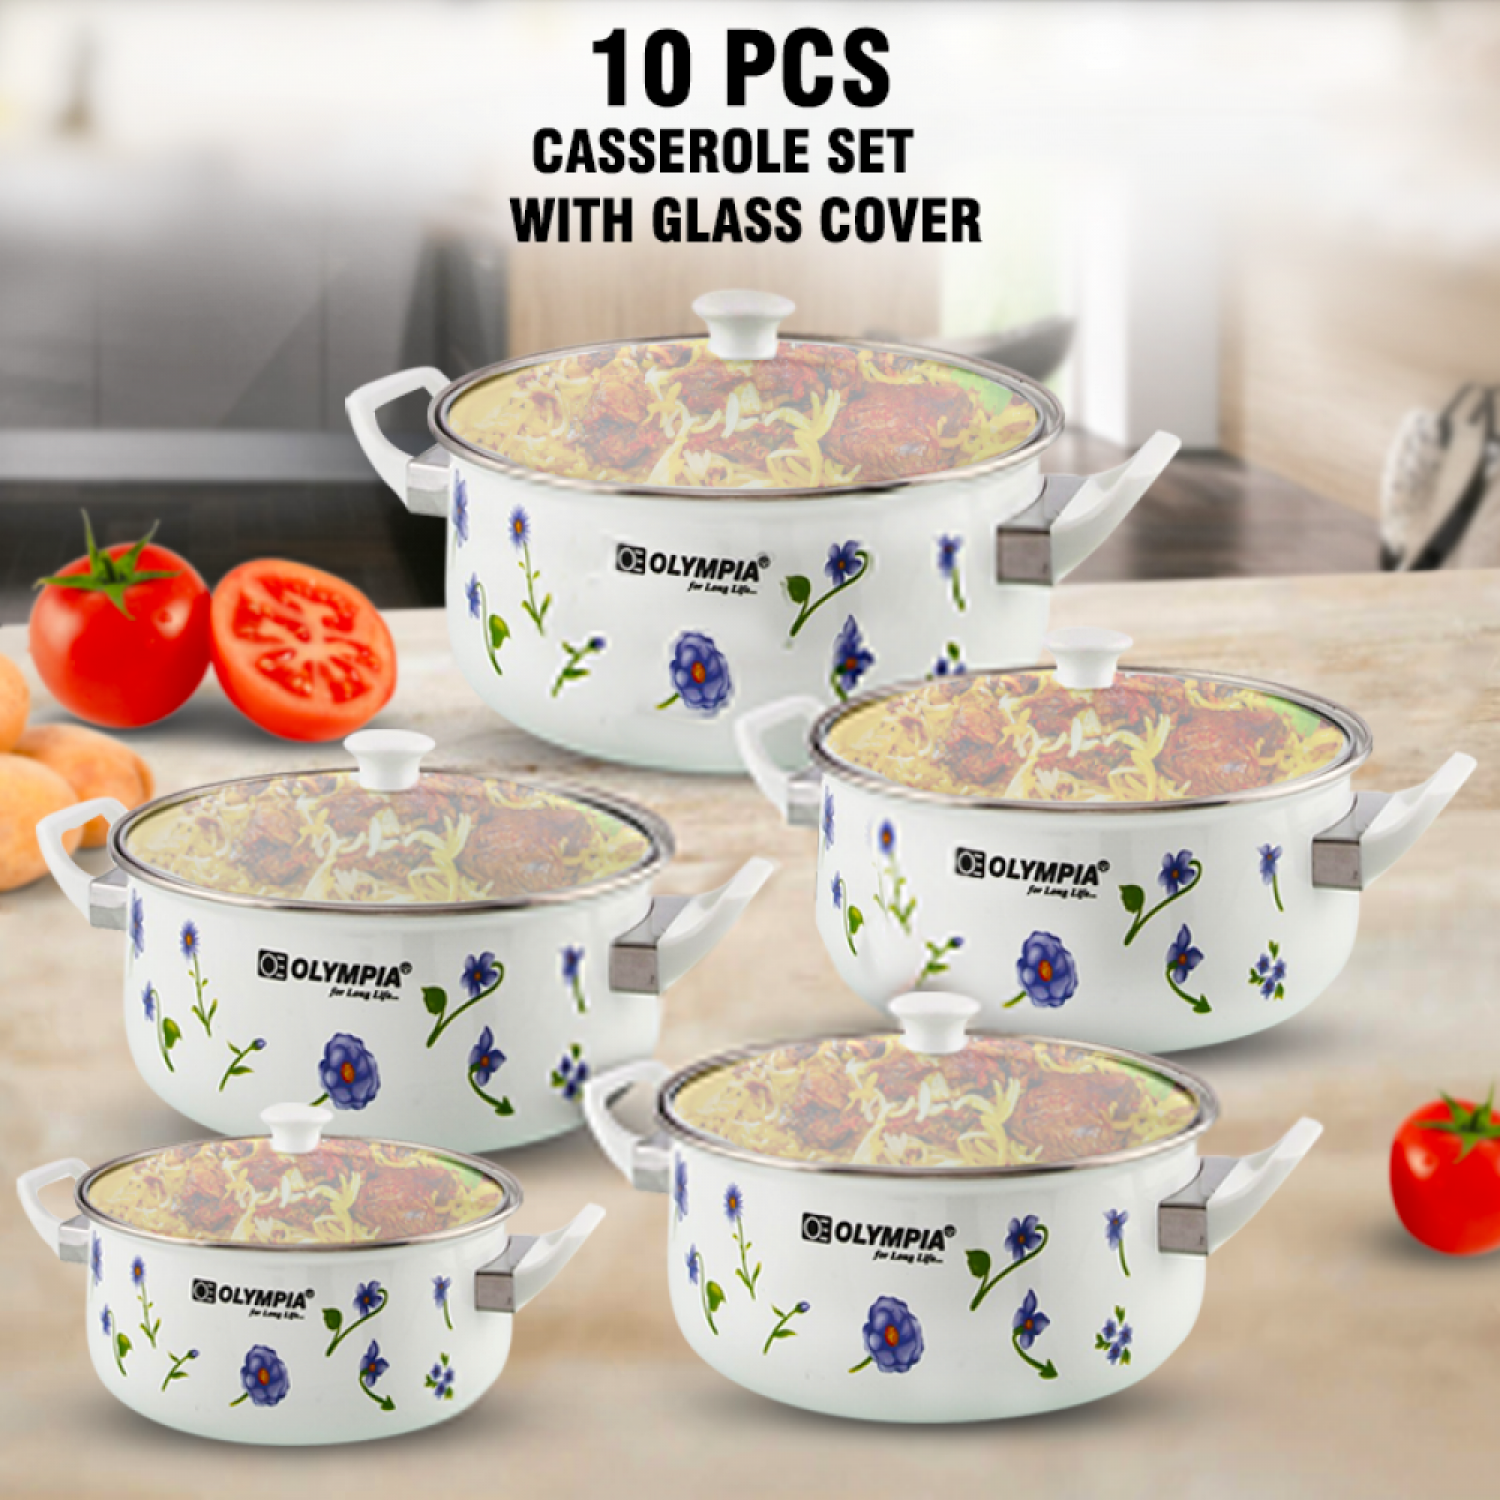 Olympia OE-004, Casserole Set With Glass Cover 10 Pcs